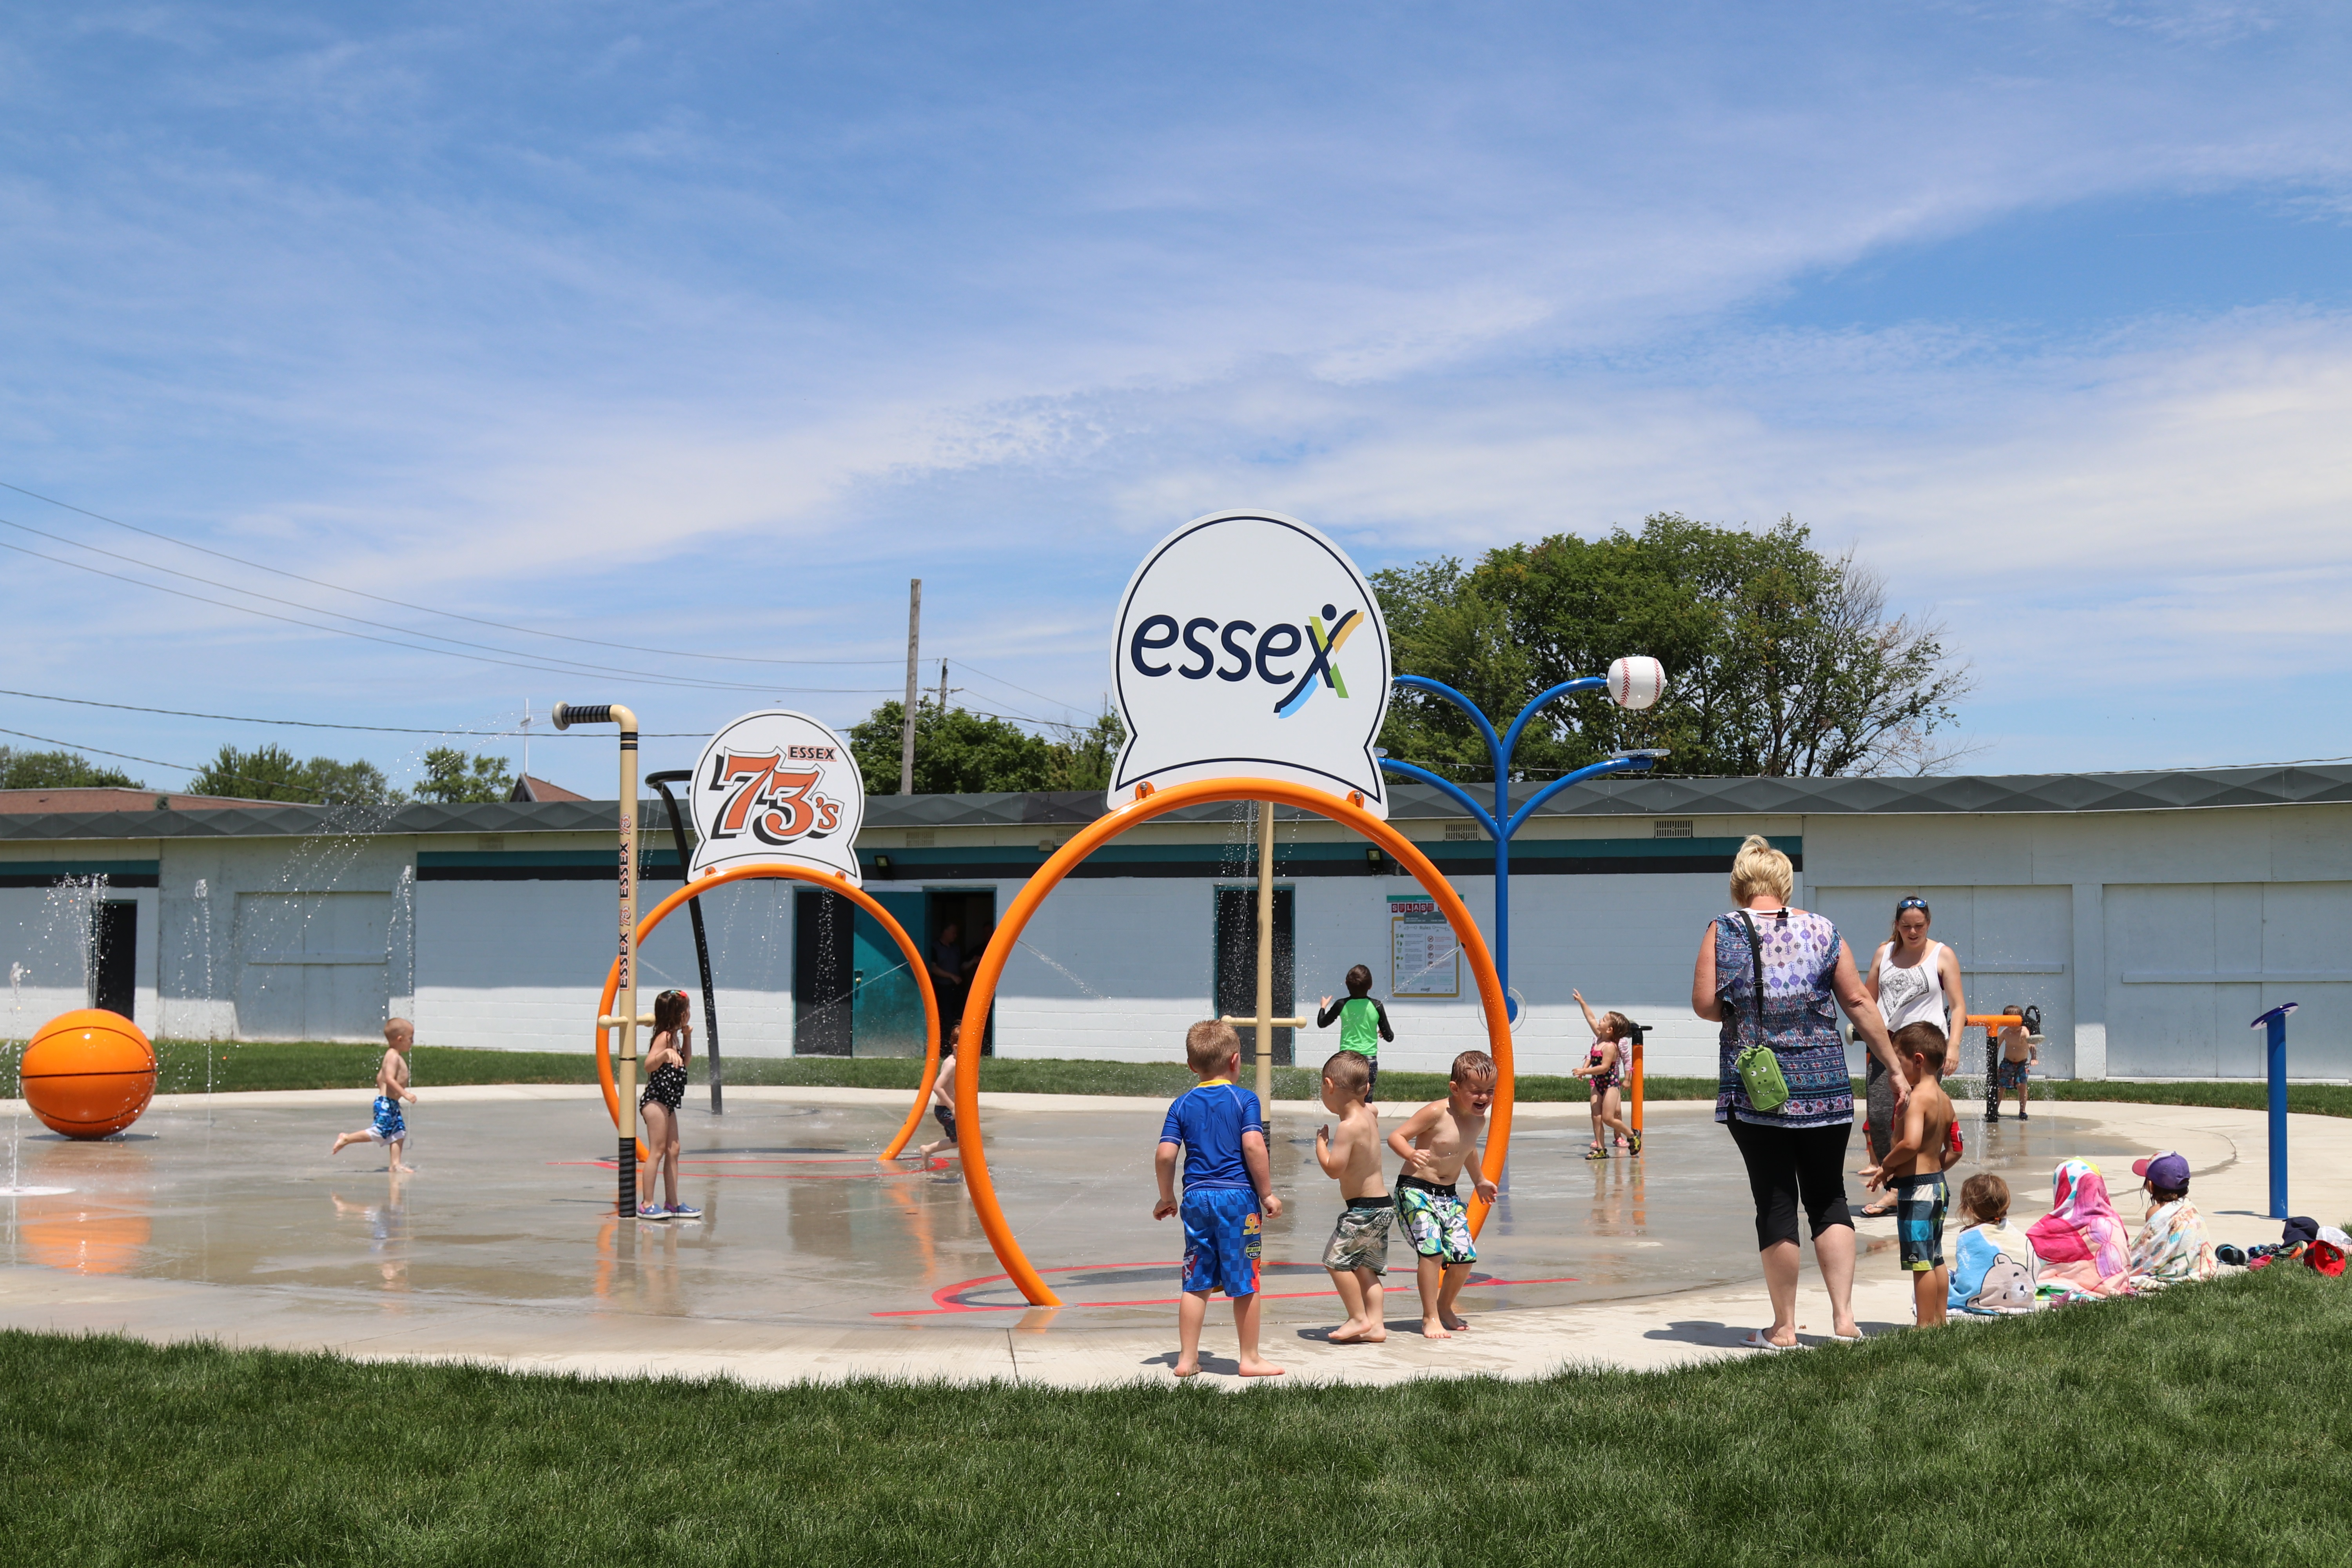 Image of grand opening of Essex Centre Splash pad. Photo shows a landscape image of the splashpad with kids and parents gathered.